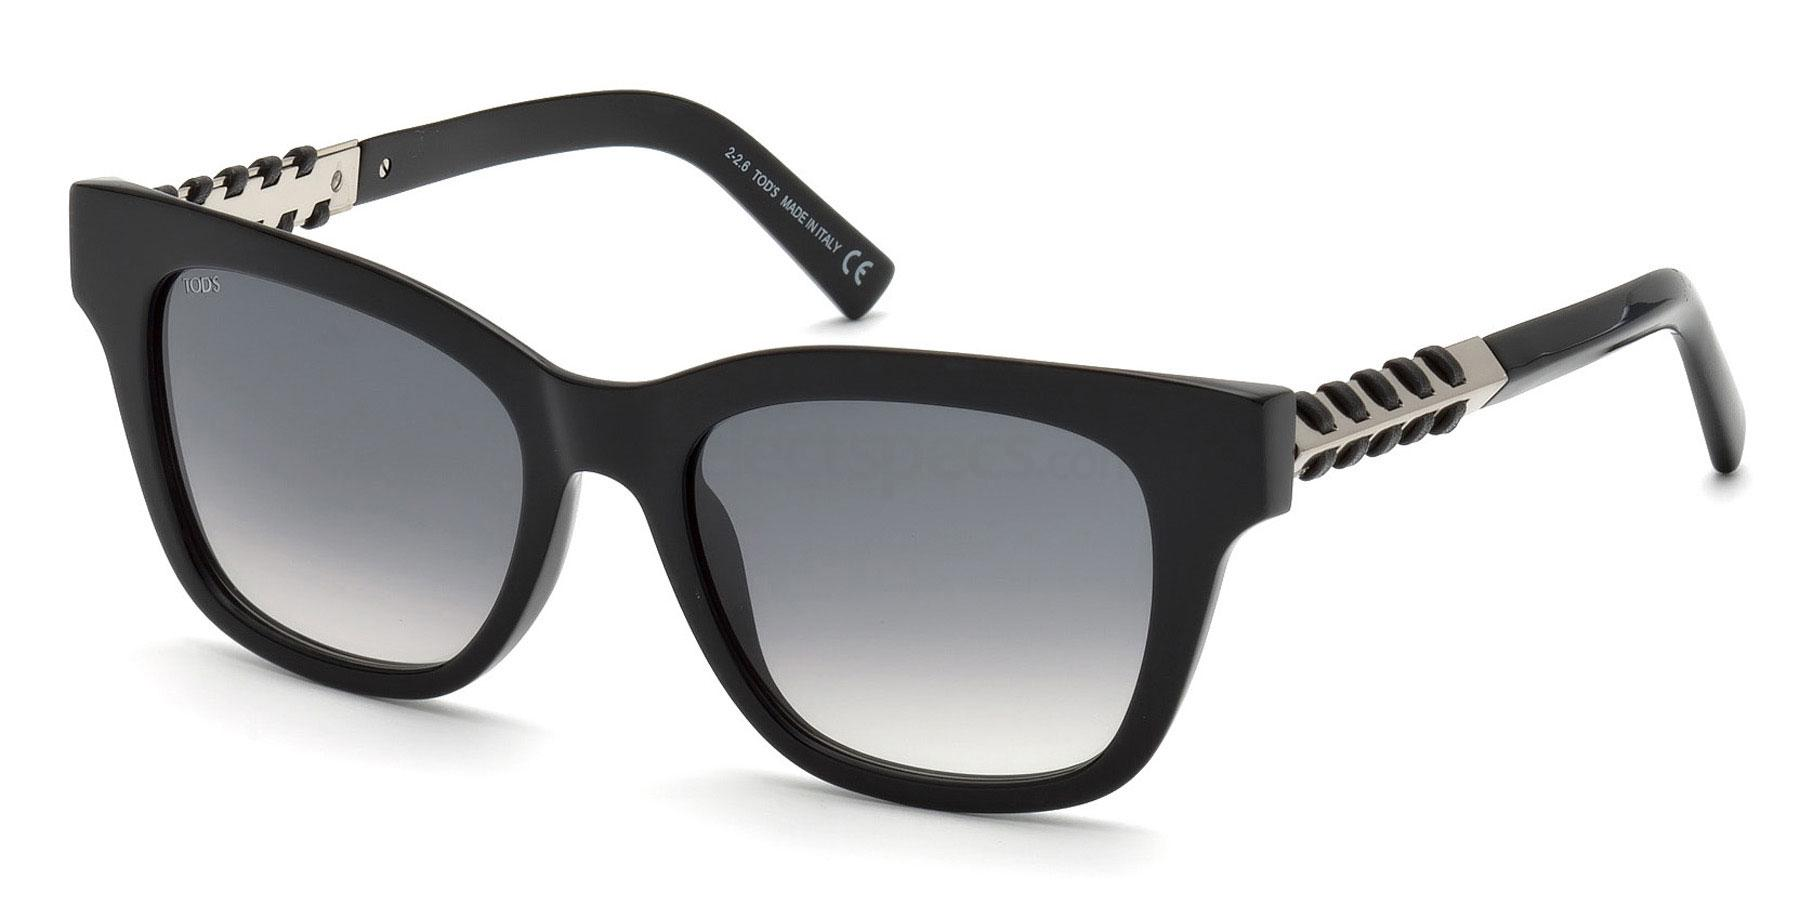 01B TO0200 Sunglasses, TODS